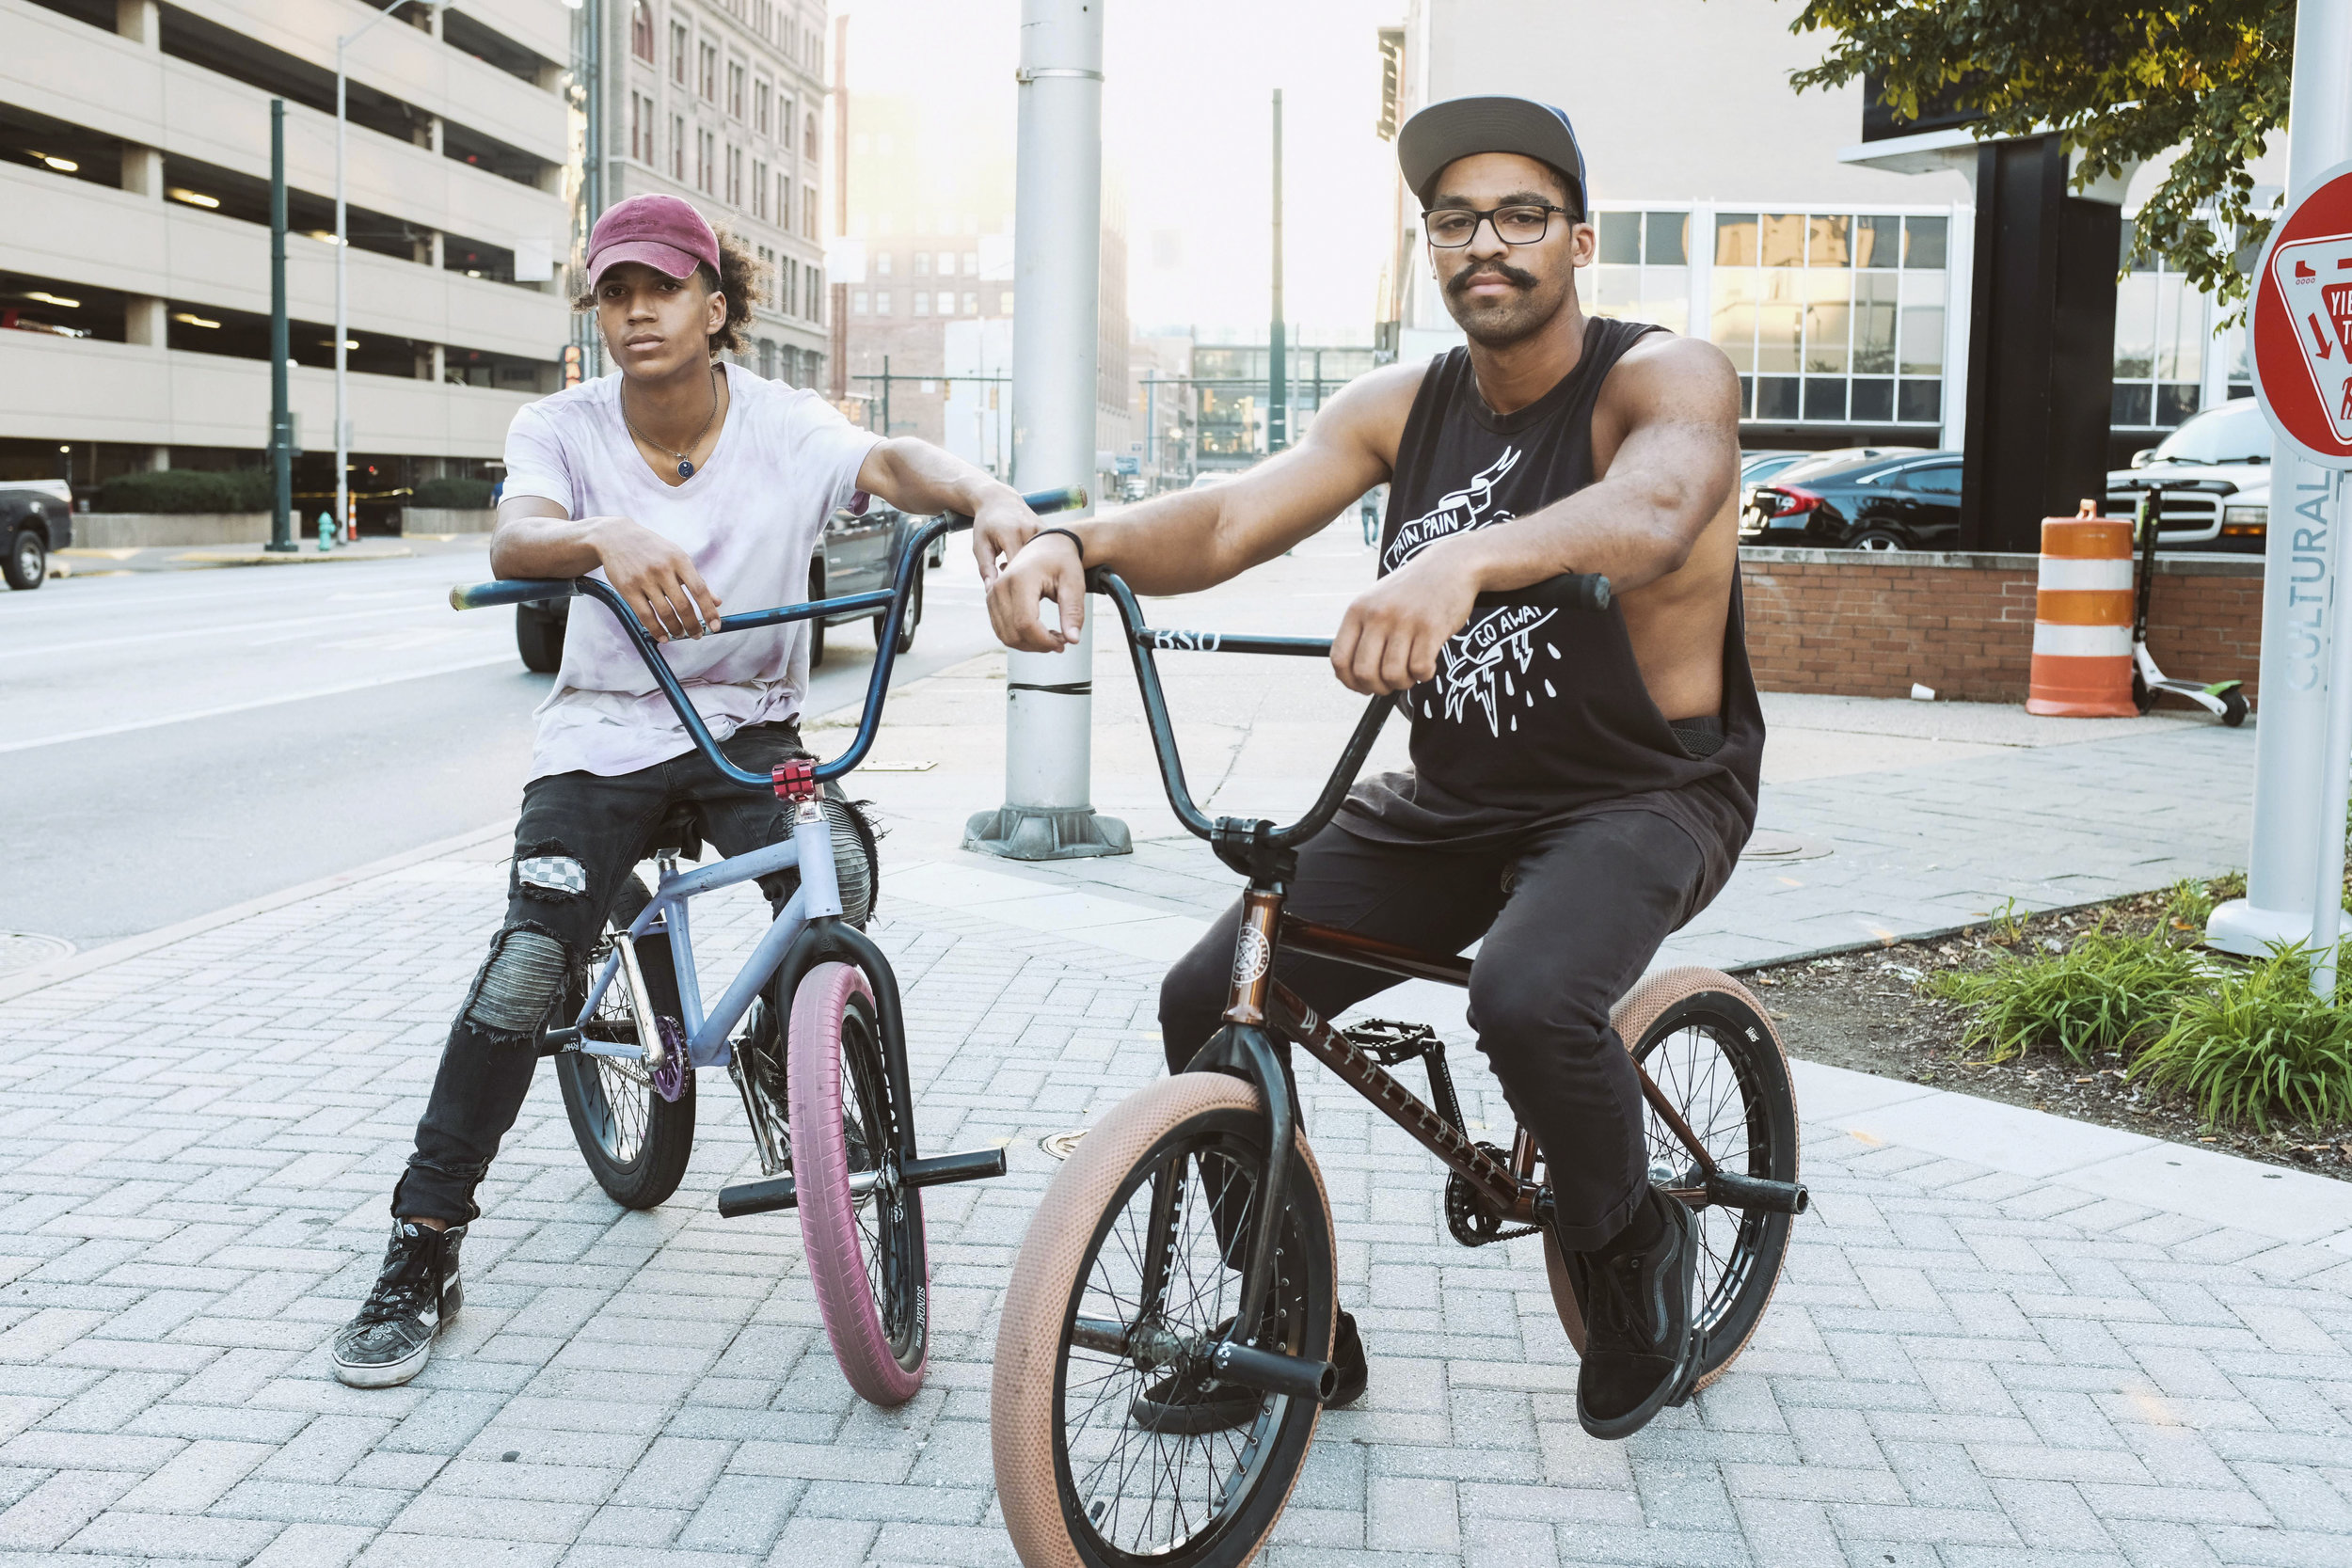 BMX Guys - Indianapolis, IN